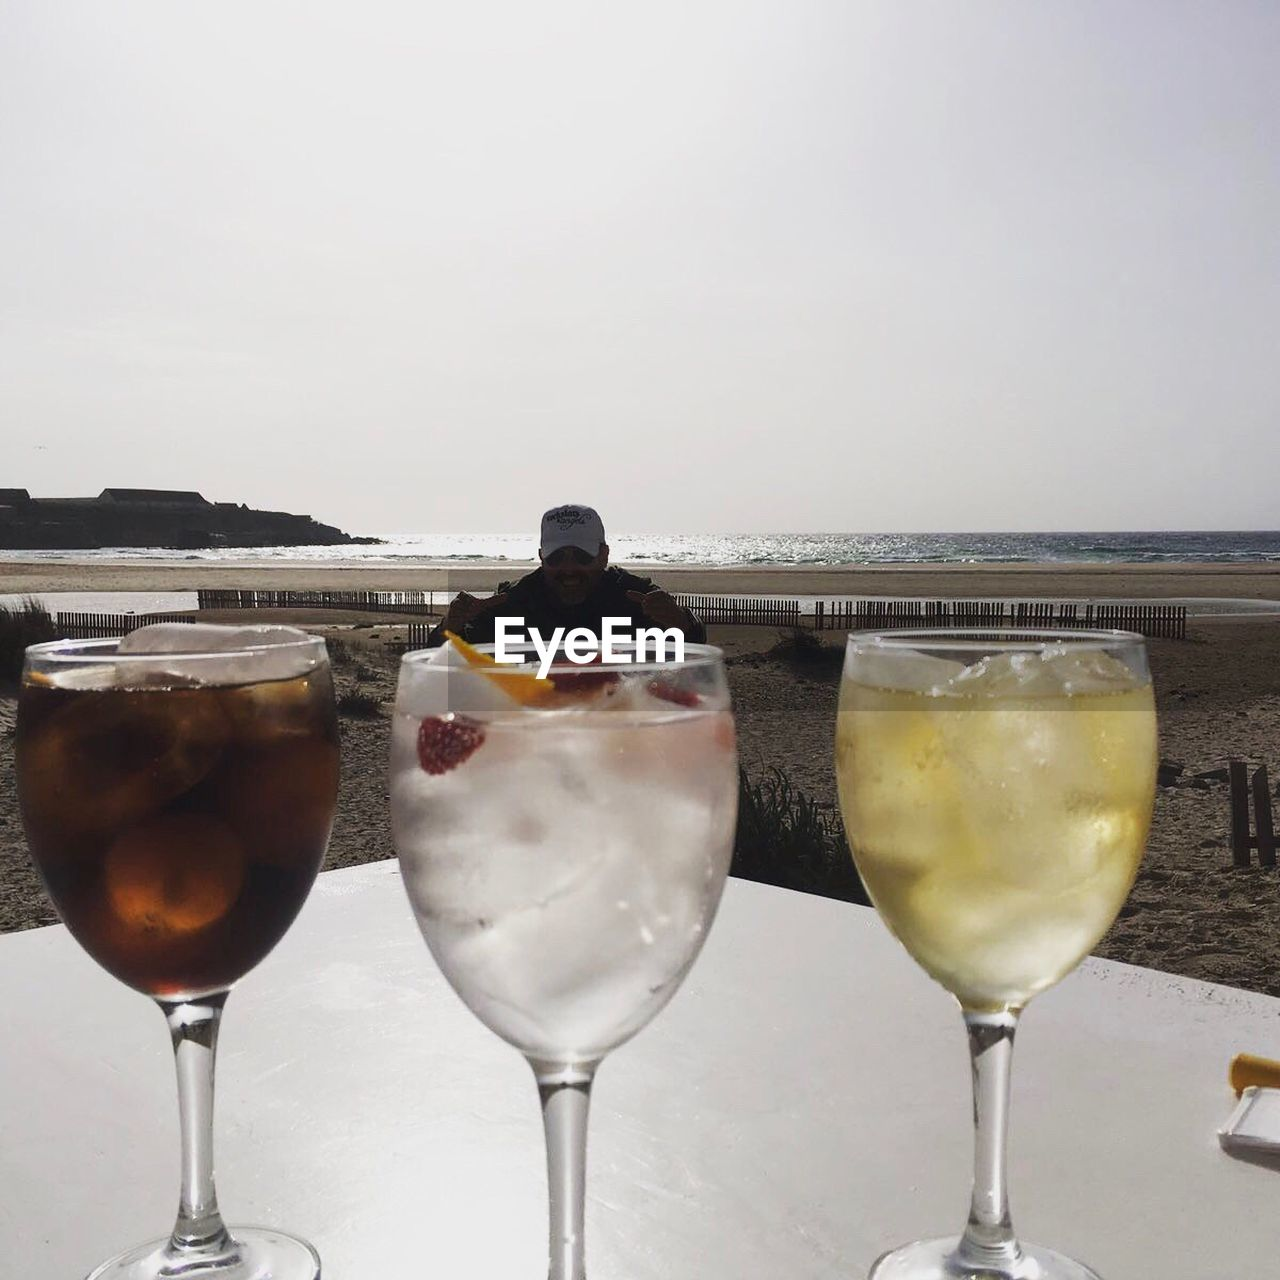 alcohol, food and drink, drink, drinking glass, refreshment, wineglass, wine, cocktail, sea, horizon over water, table, beach, close-up, freshness, outdoors, sky, clear sky, tropical drink, no people, white background, day, food